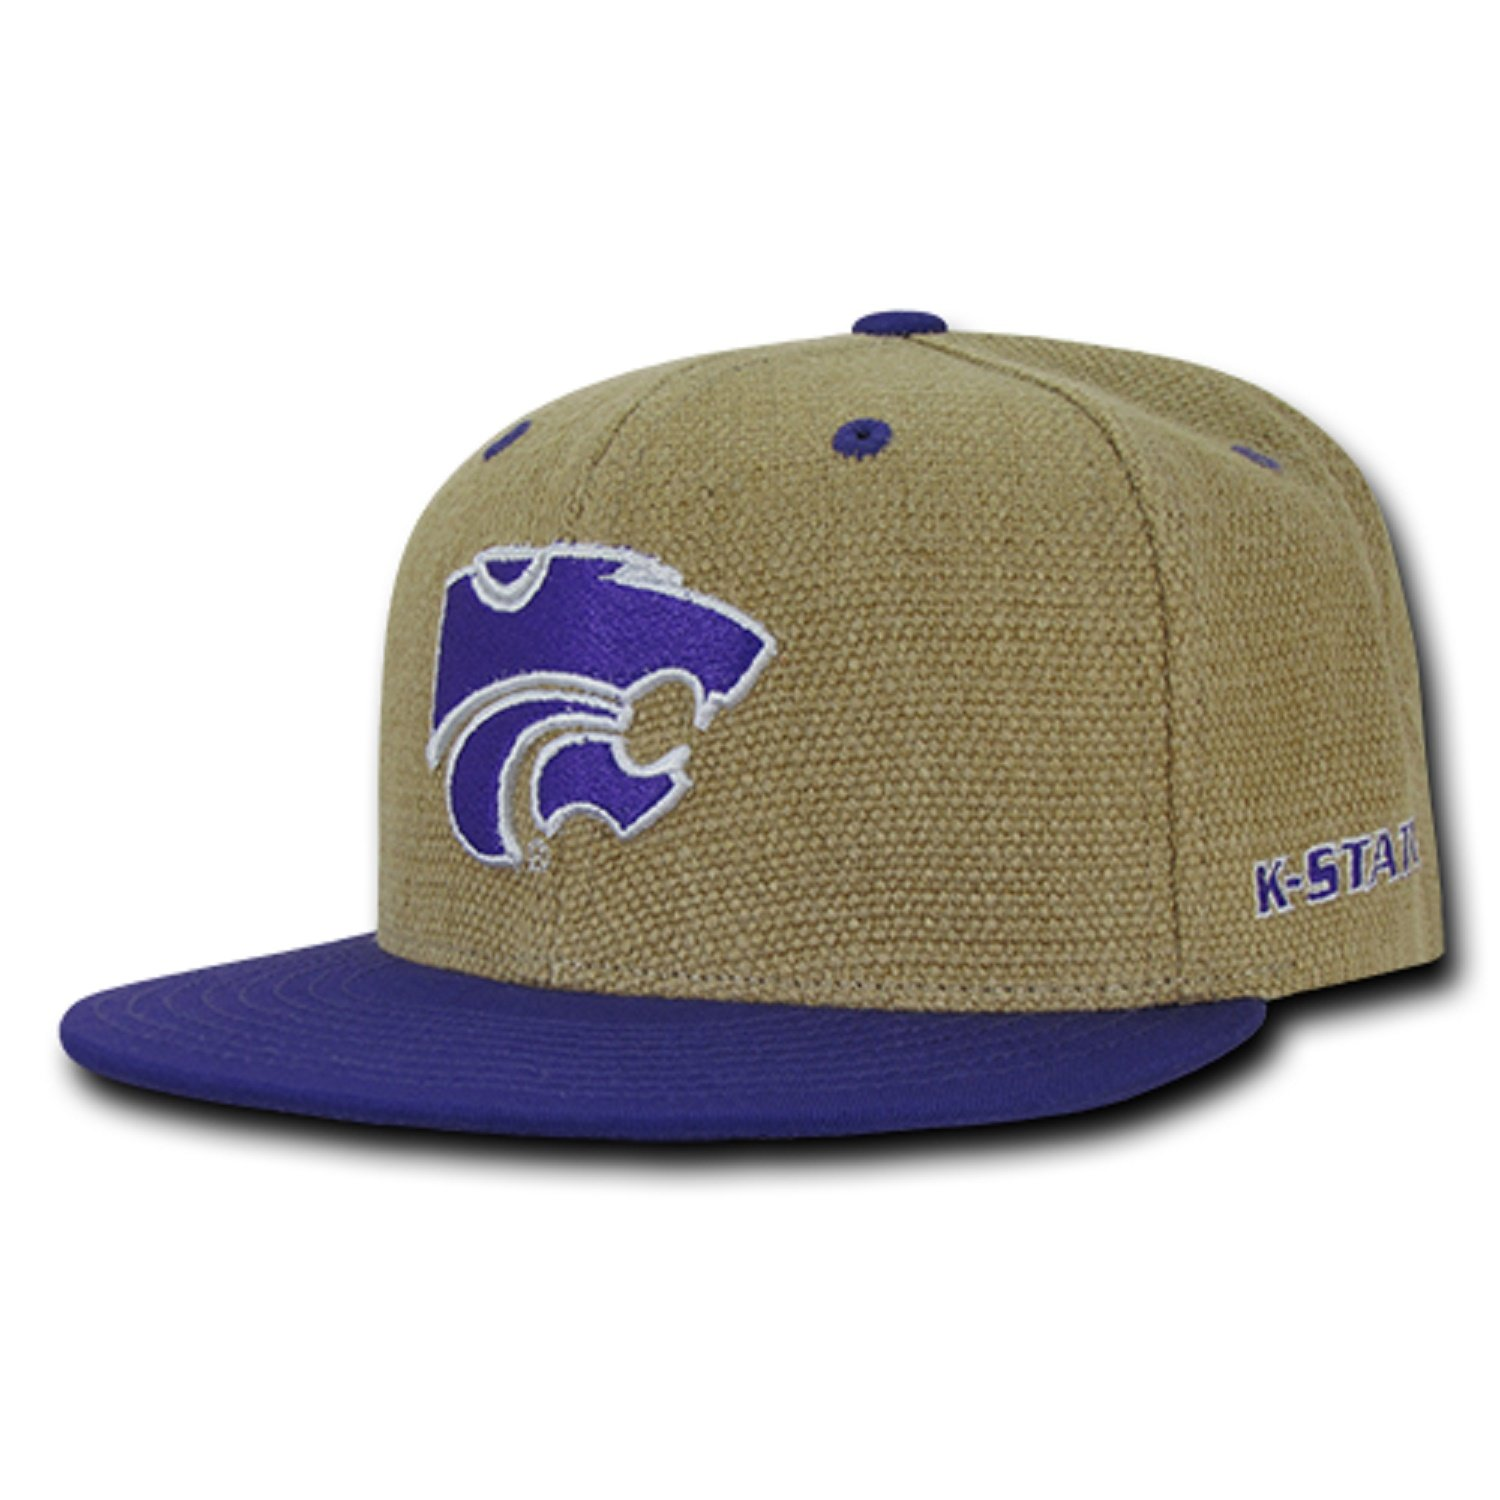 a7170be5f6a University of Kansas State K-State Wildcats Structured Flat Bill Jute Baseball  Ball Cap Hat at Amazon Men s Clothing store